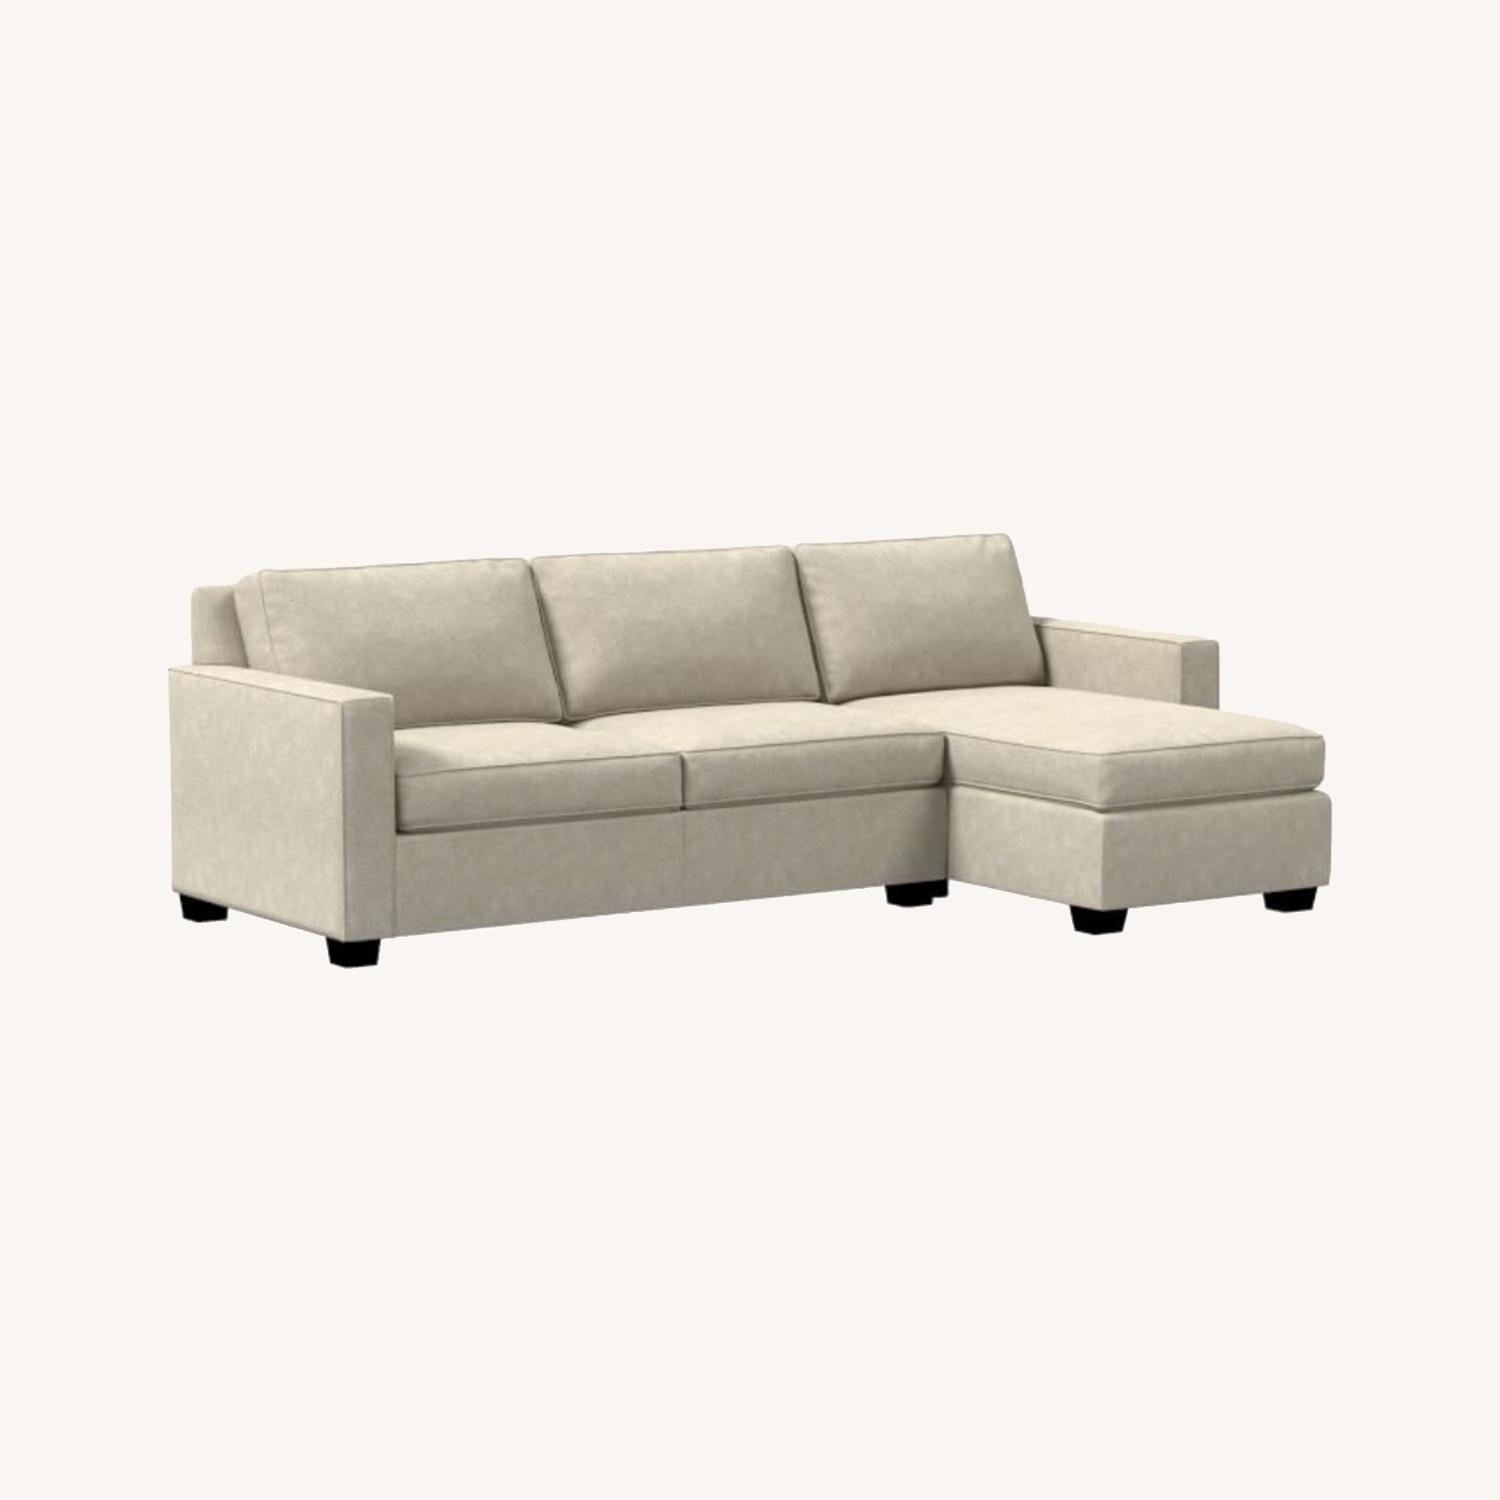 West Elm Henry 2-Piece Full Sleeper Sectional - image-0